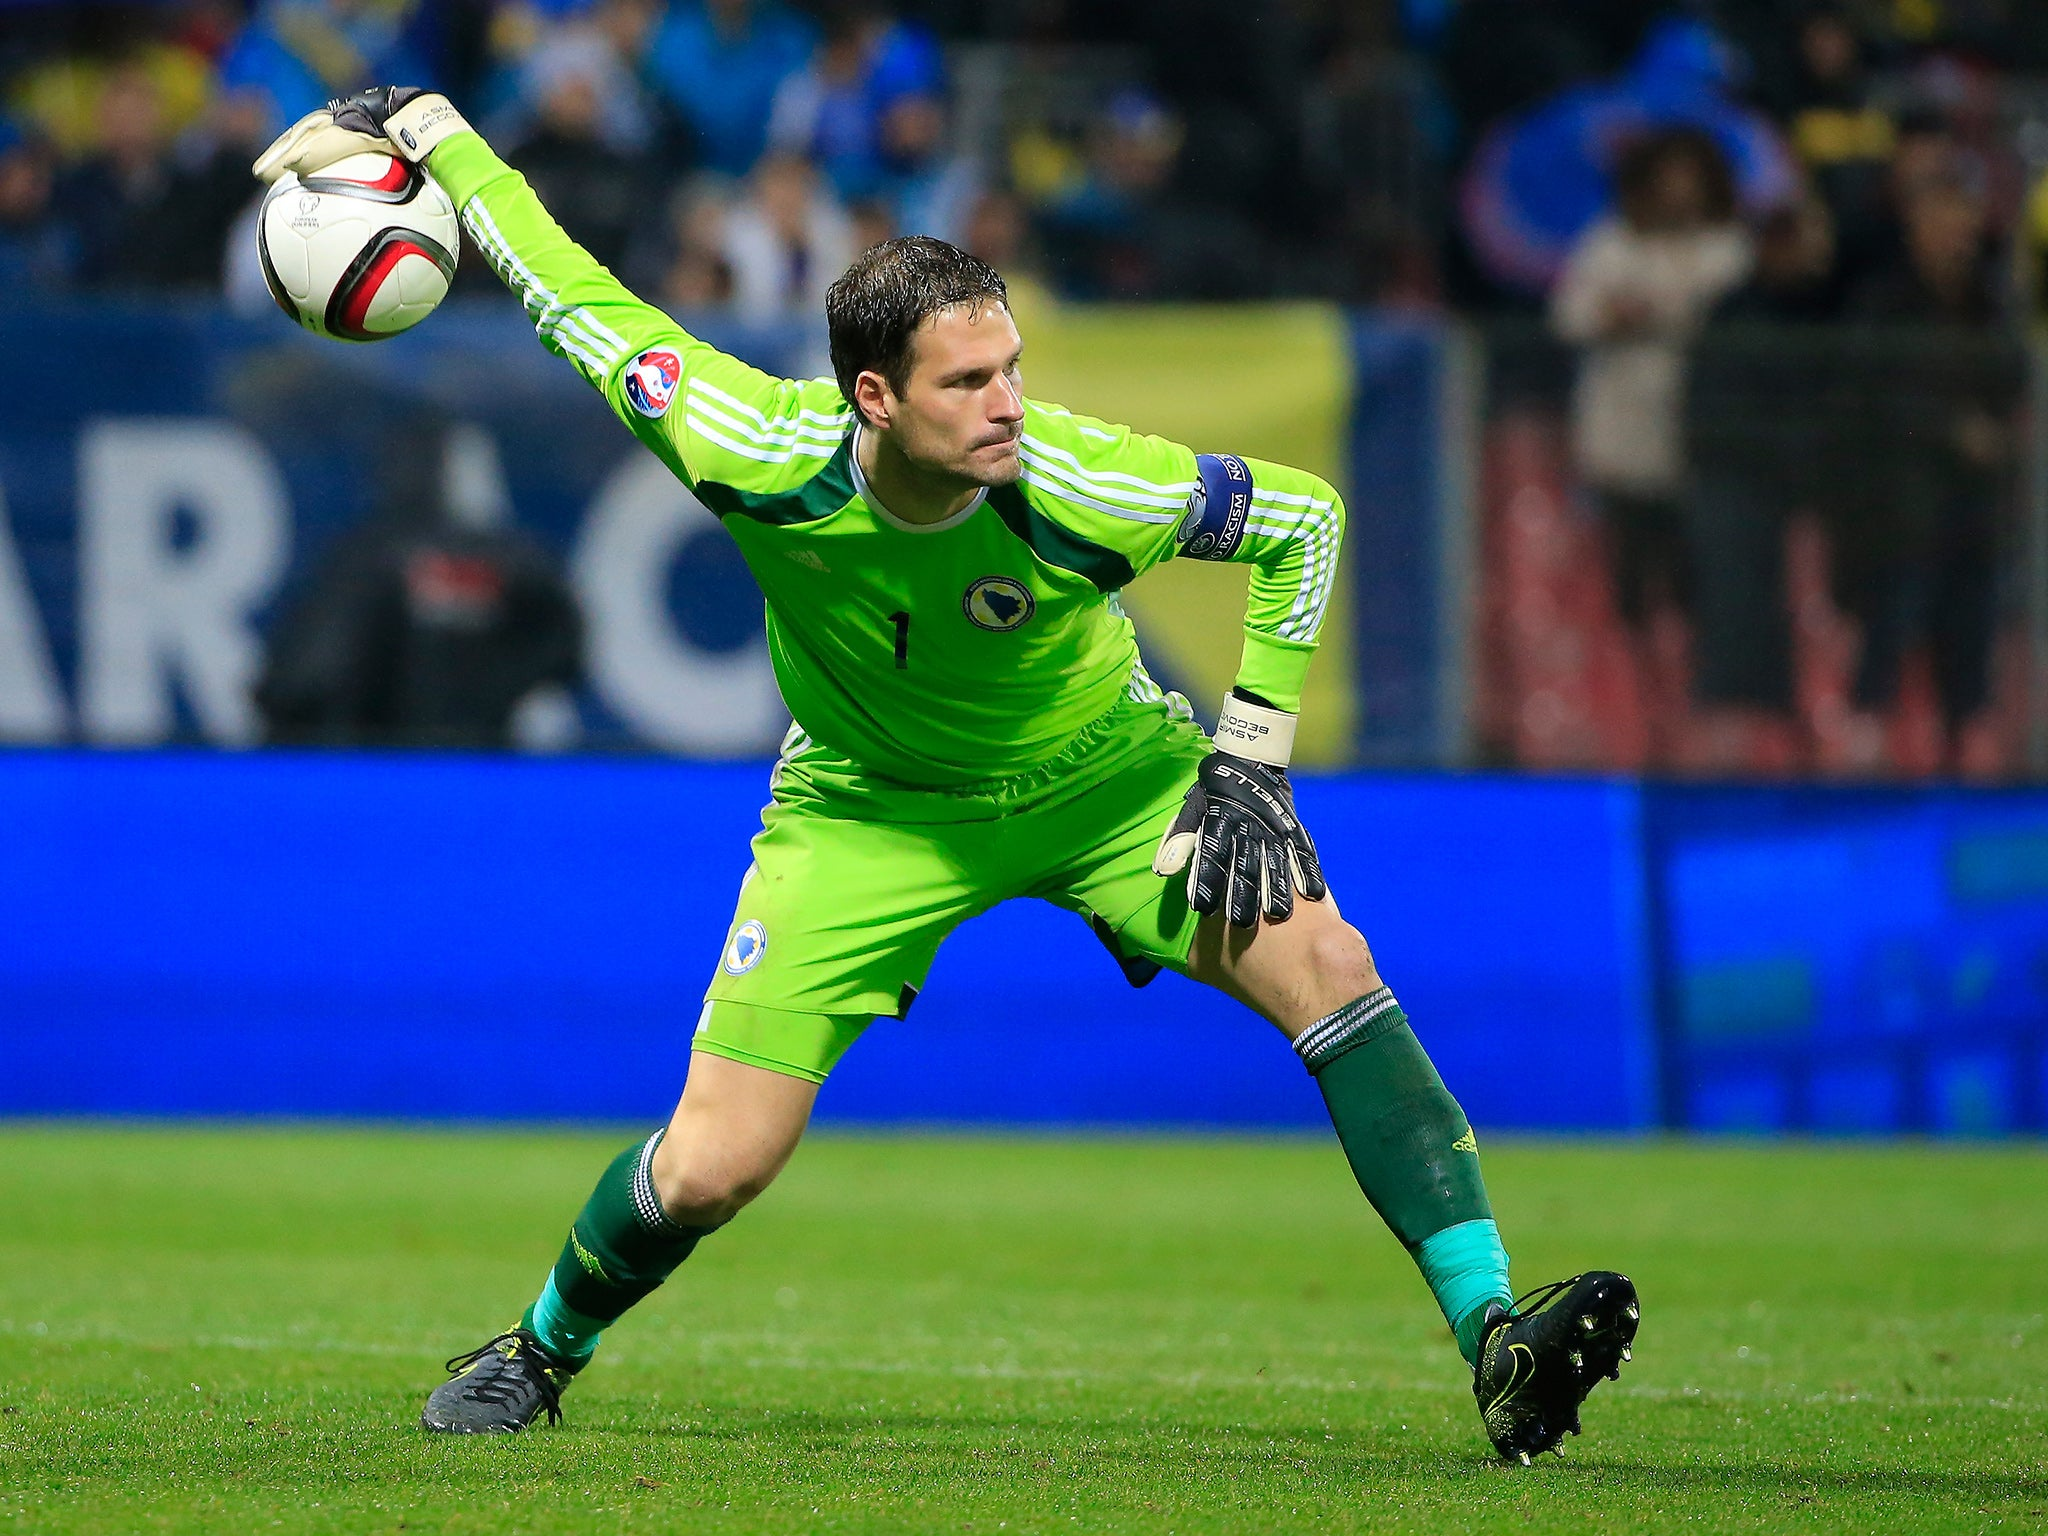 Asmir Begovic hopes his positive energy can rub off on Chelsea